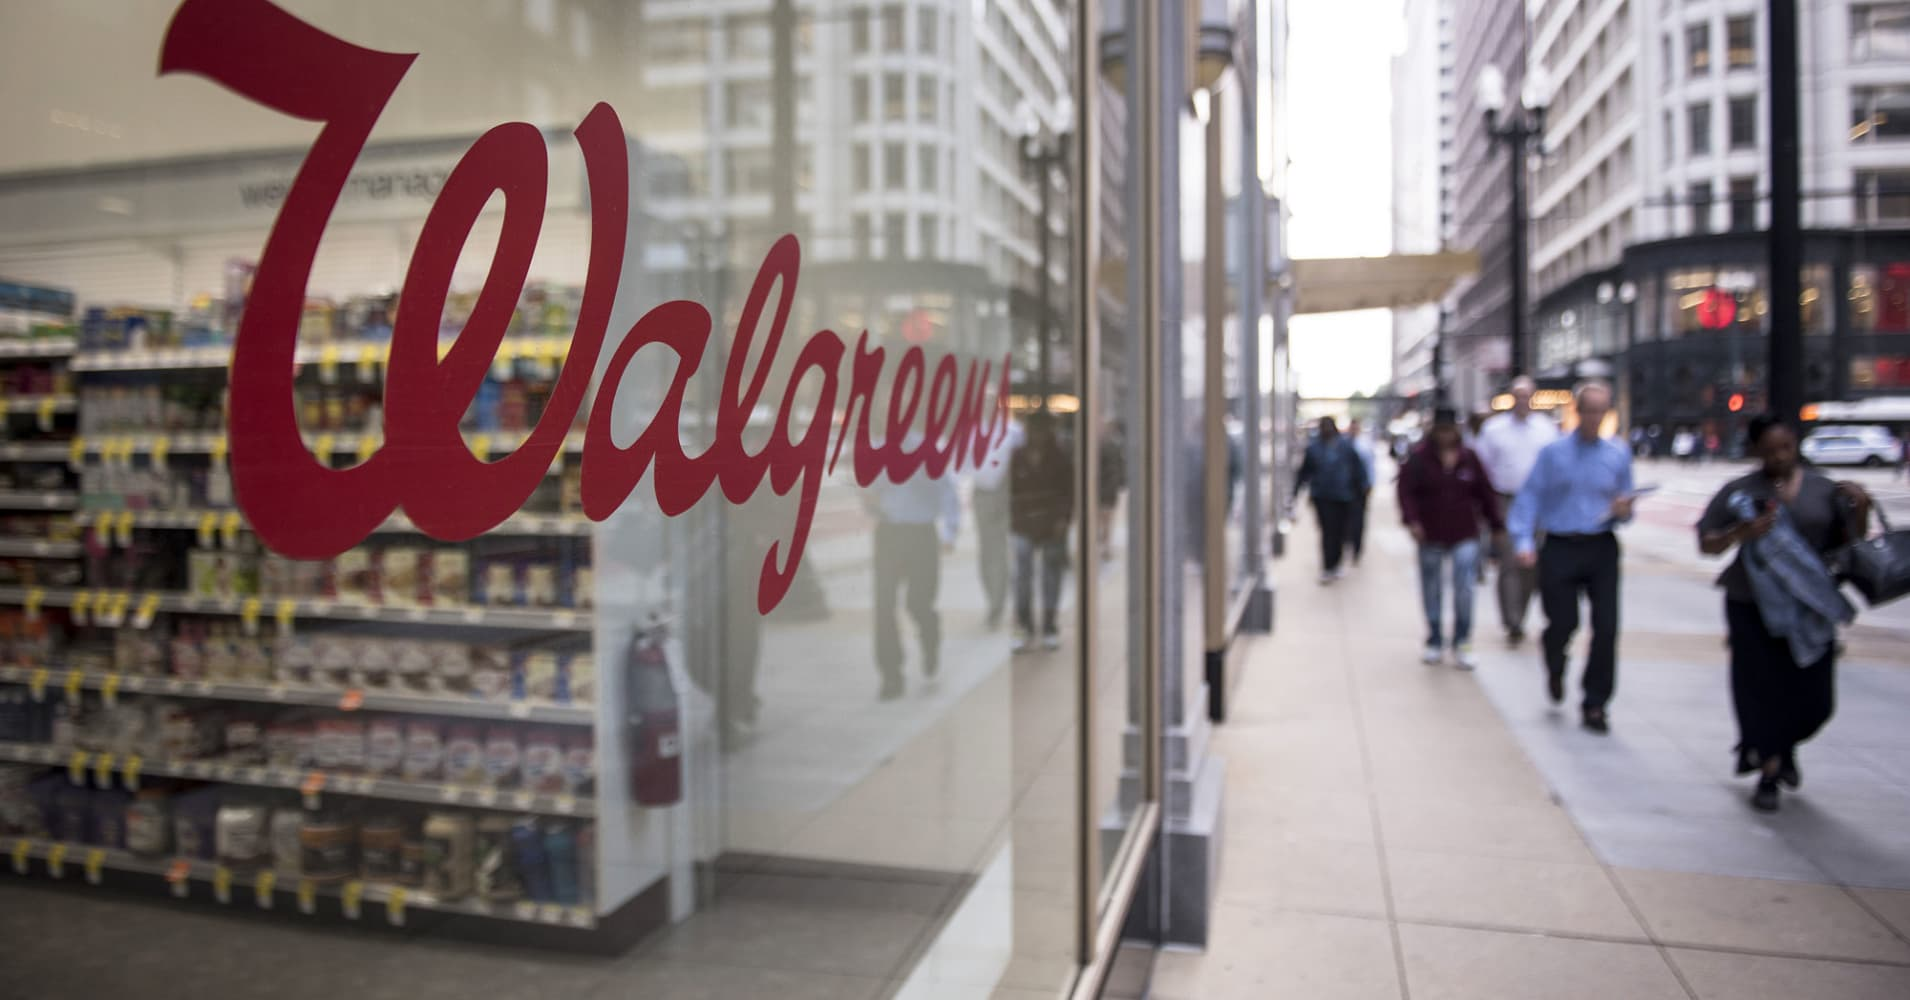 Walgreens Boots Alliance posts mixed fourth-quarter earnings results